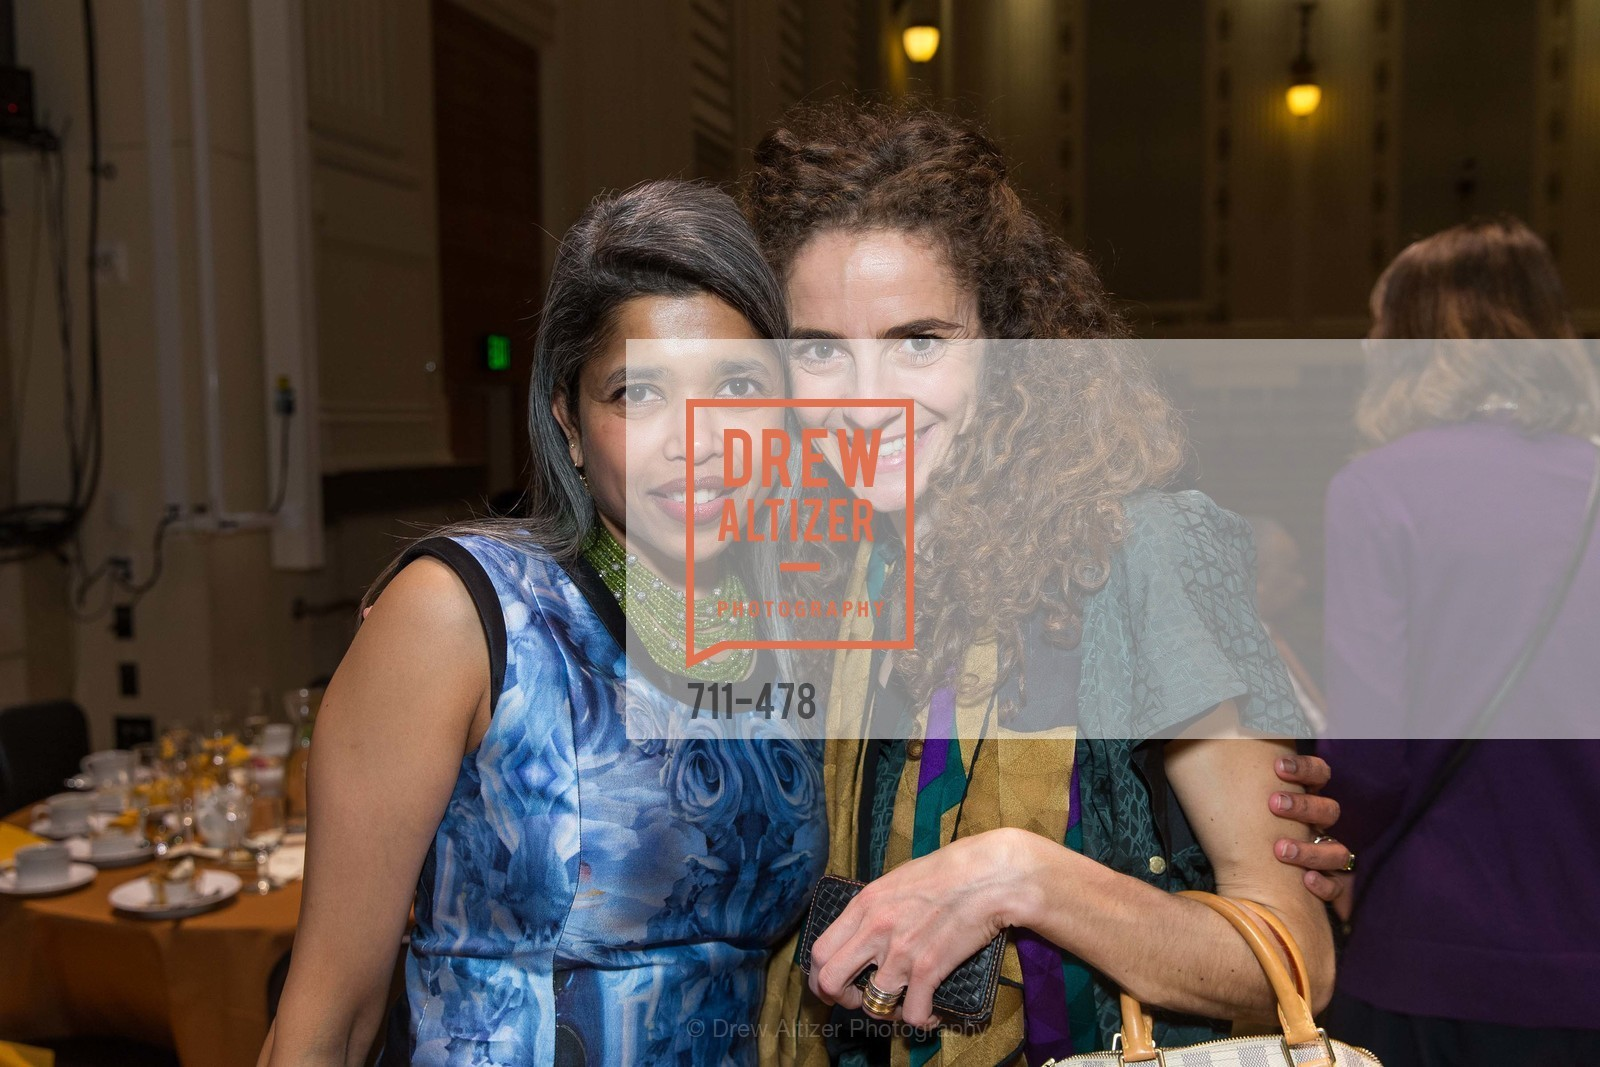 Deepa Pakianathan, Monica Savini, SAN FRANCISCO CONSERVATORY OF MUSIC'S 2014 Fanfare Luncheon, US. Conservatory of Music, January 24th, 2014,Drew Altizer, Drew Altizer Photography, full-service agency, private events, San Francisco photographer, photographer california